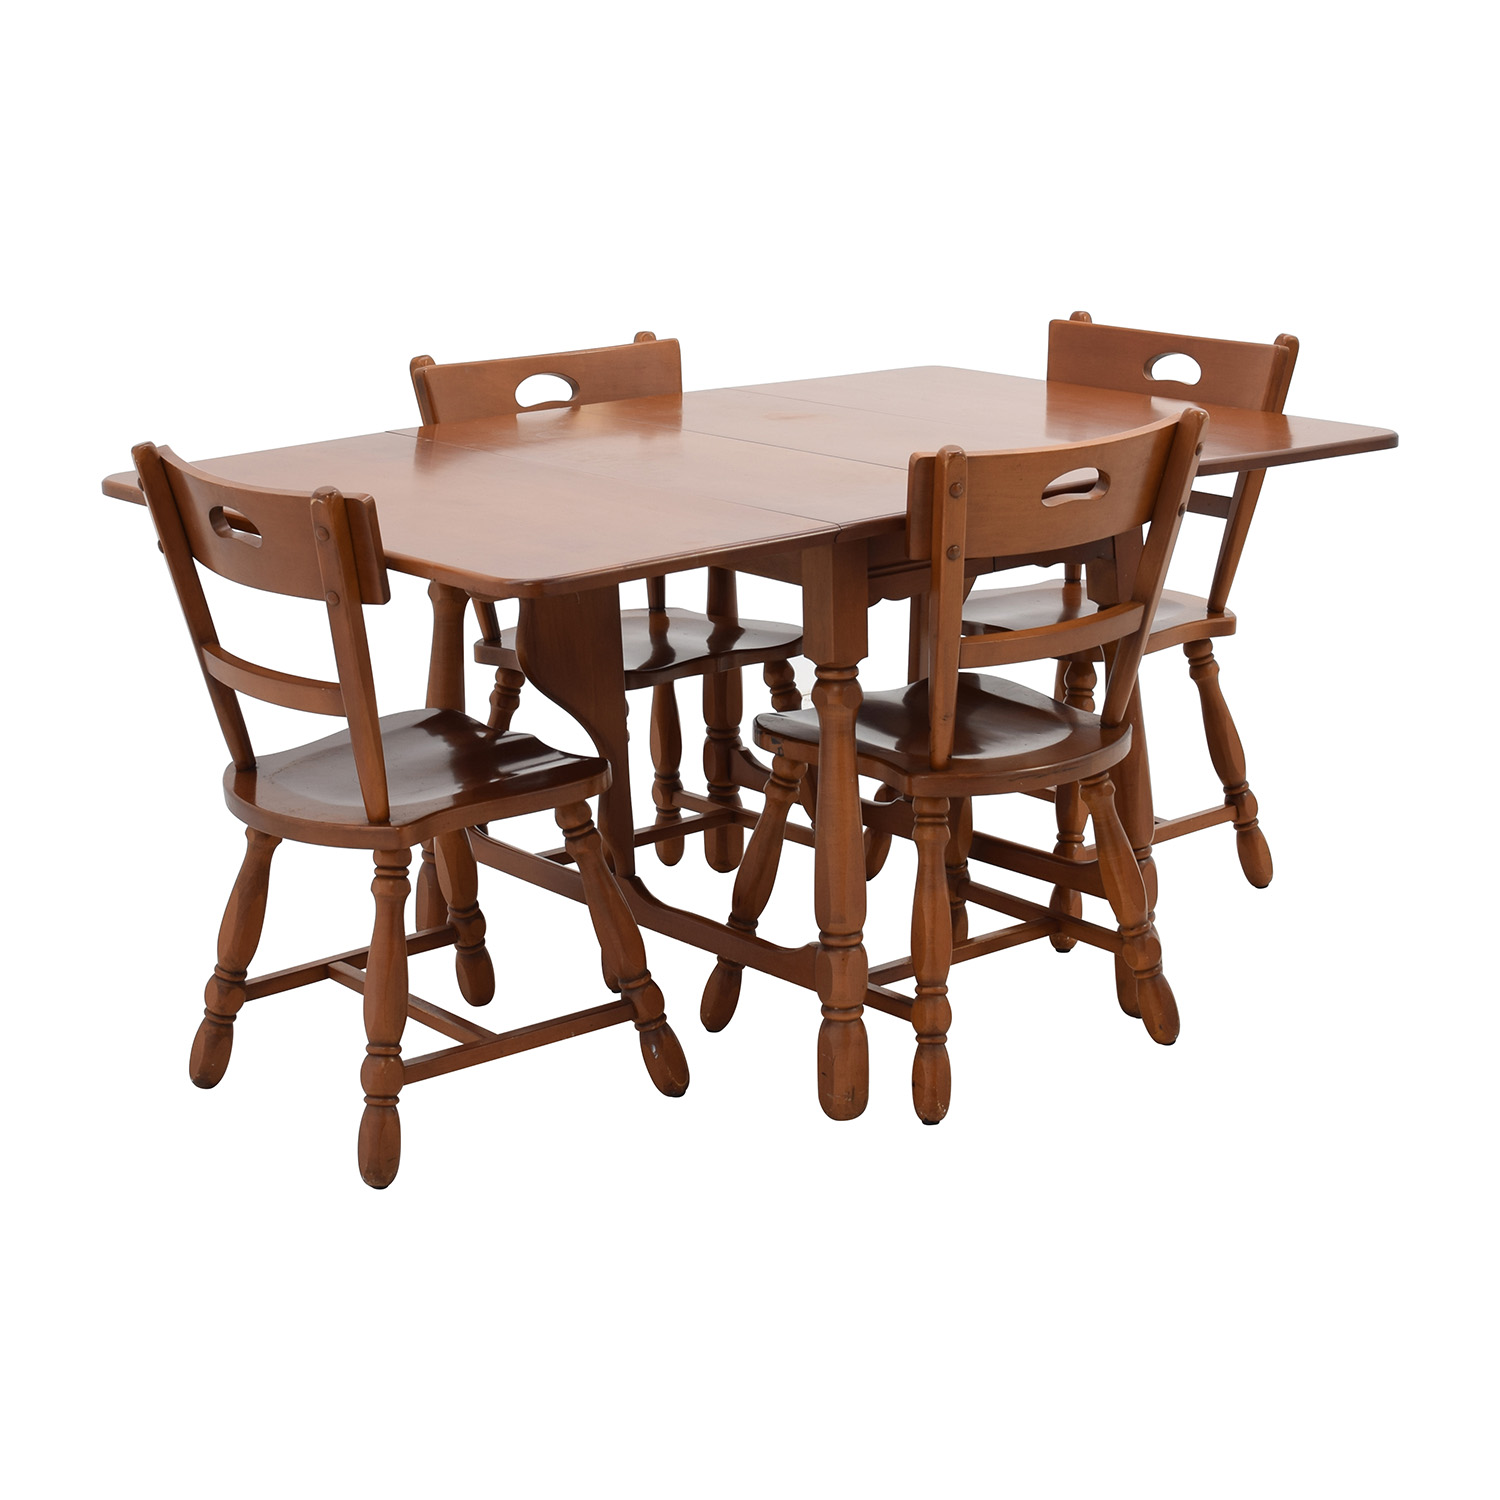 83 OFF Maple Dining Table with Four Matching Chairs  : used maple dining table with four matching chairs from www.furnishare.com size 1500 x 1500 jpeg 270kB